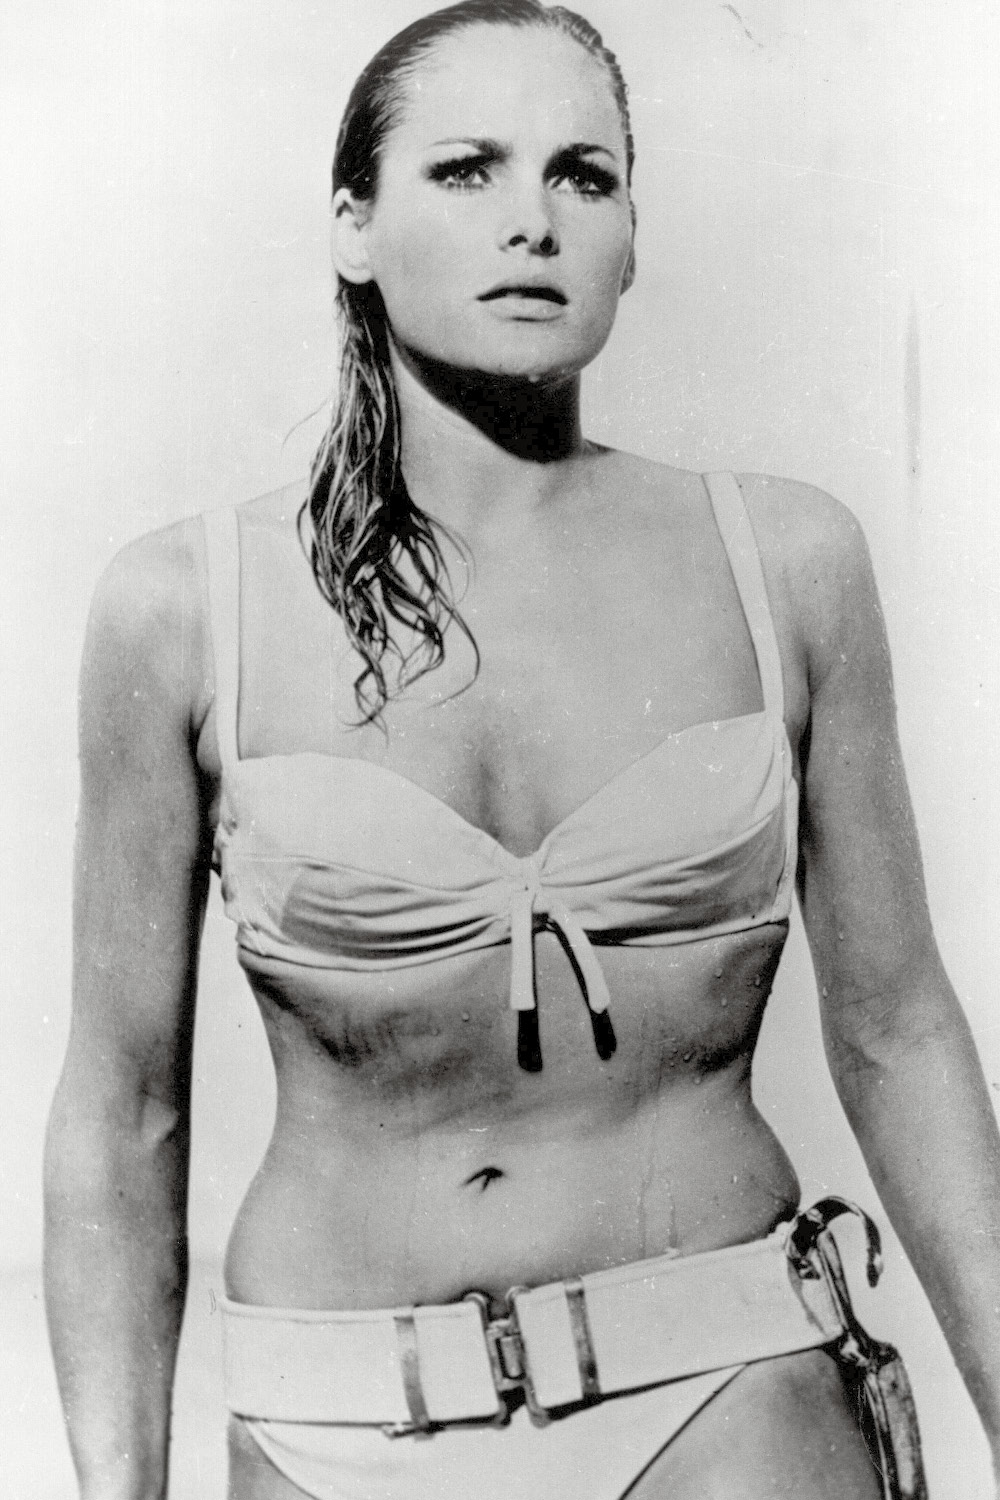 Ursula Andress piscis. Ursula Andress